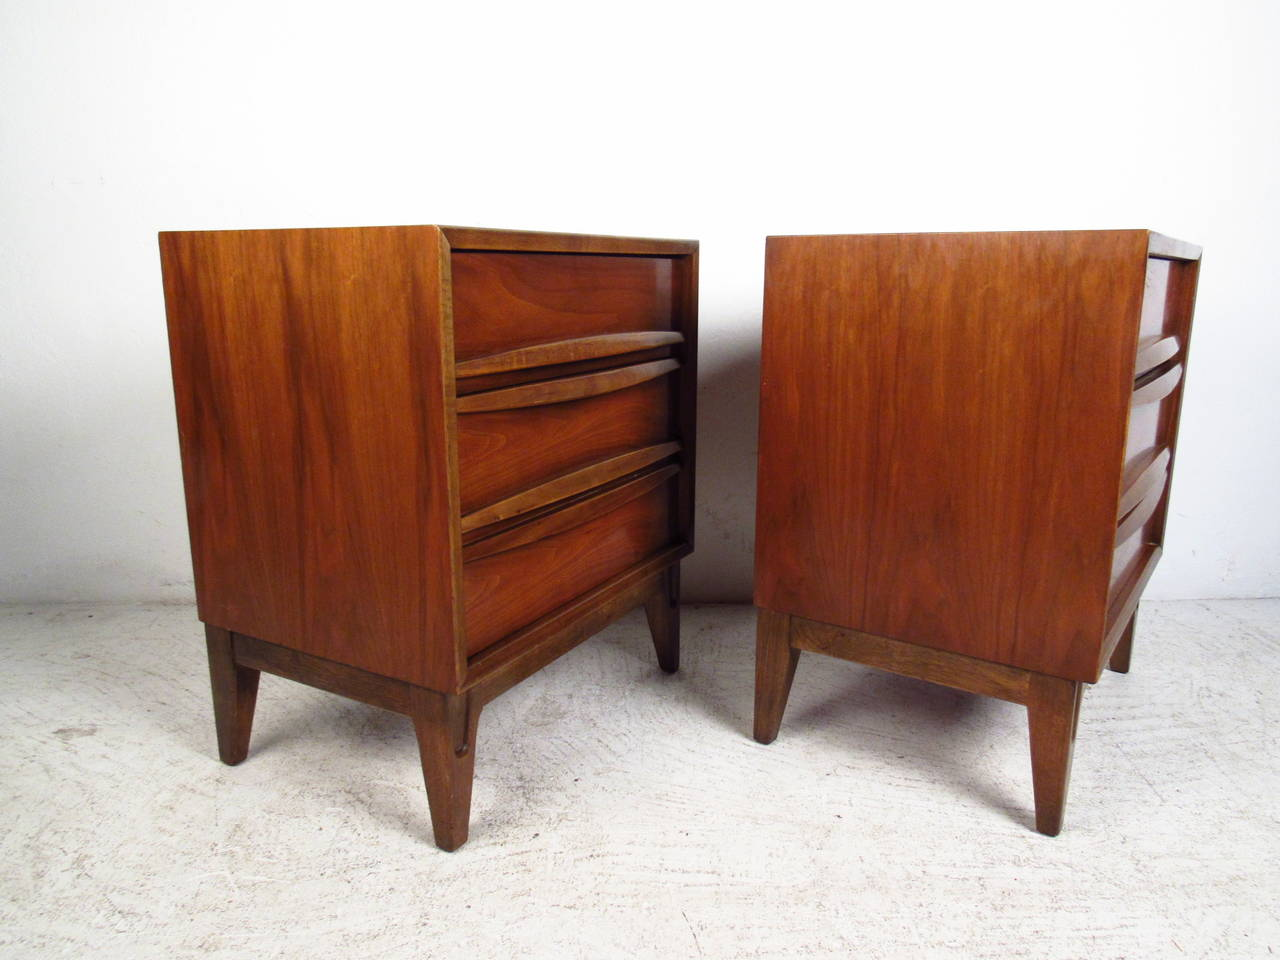 This beautiful pair of vintage nightstands features three drawer design with sculptural pulls and tapered legs. Room for concealed storage and stylish presentation couples with a wonderful walnut finish to make these the perfect addition to any